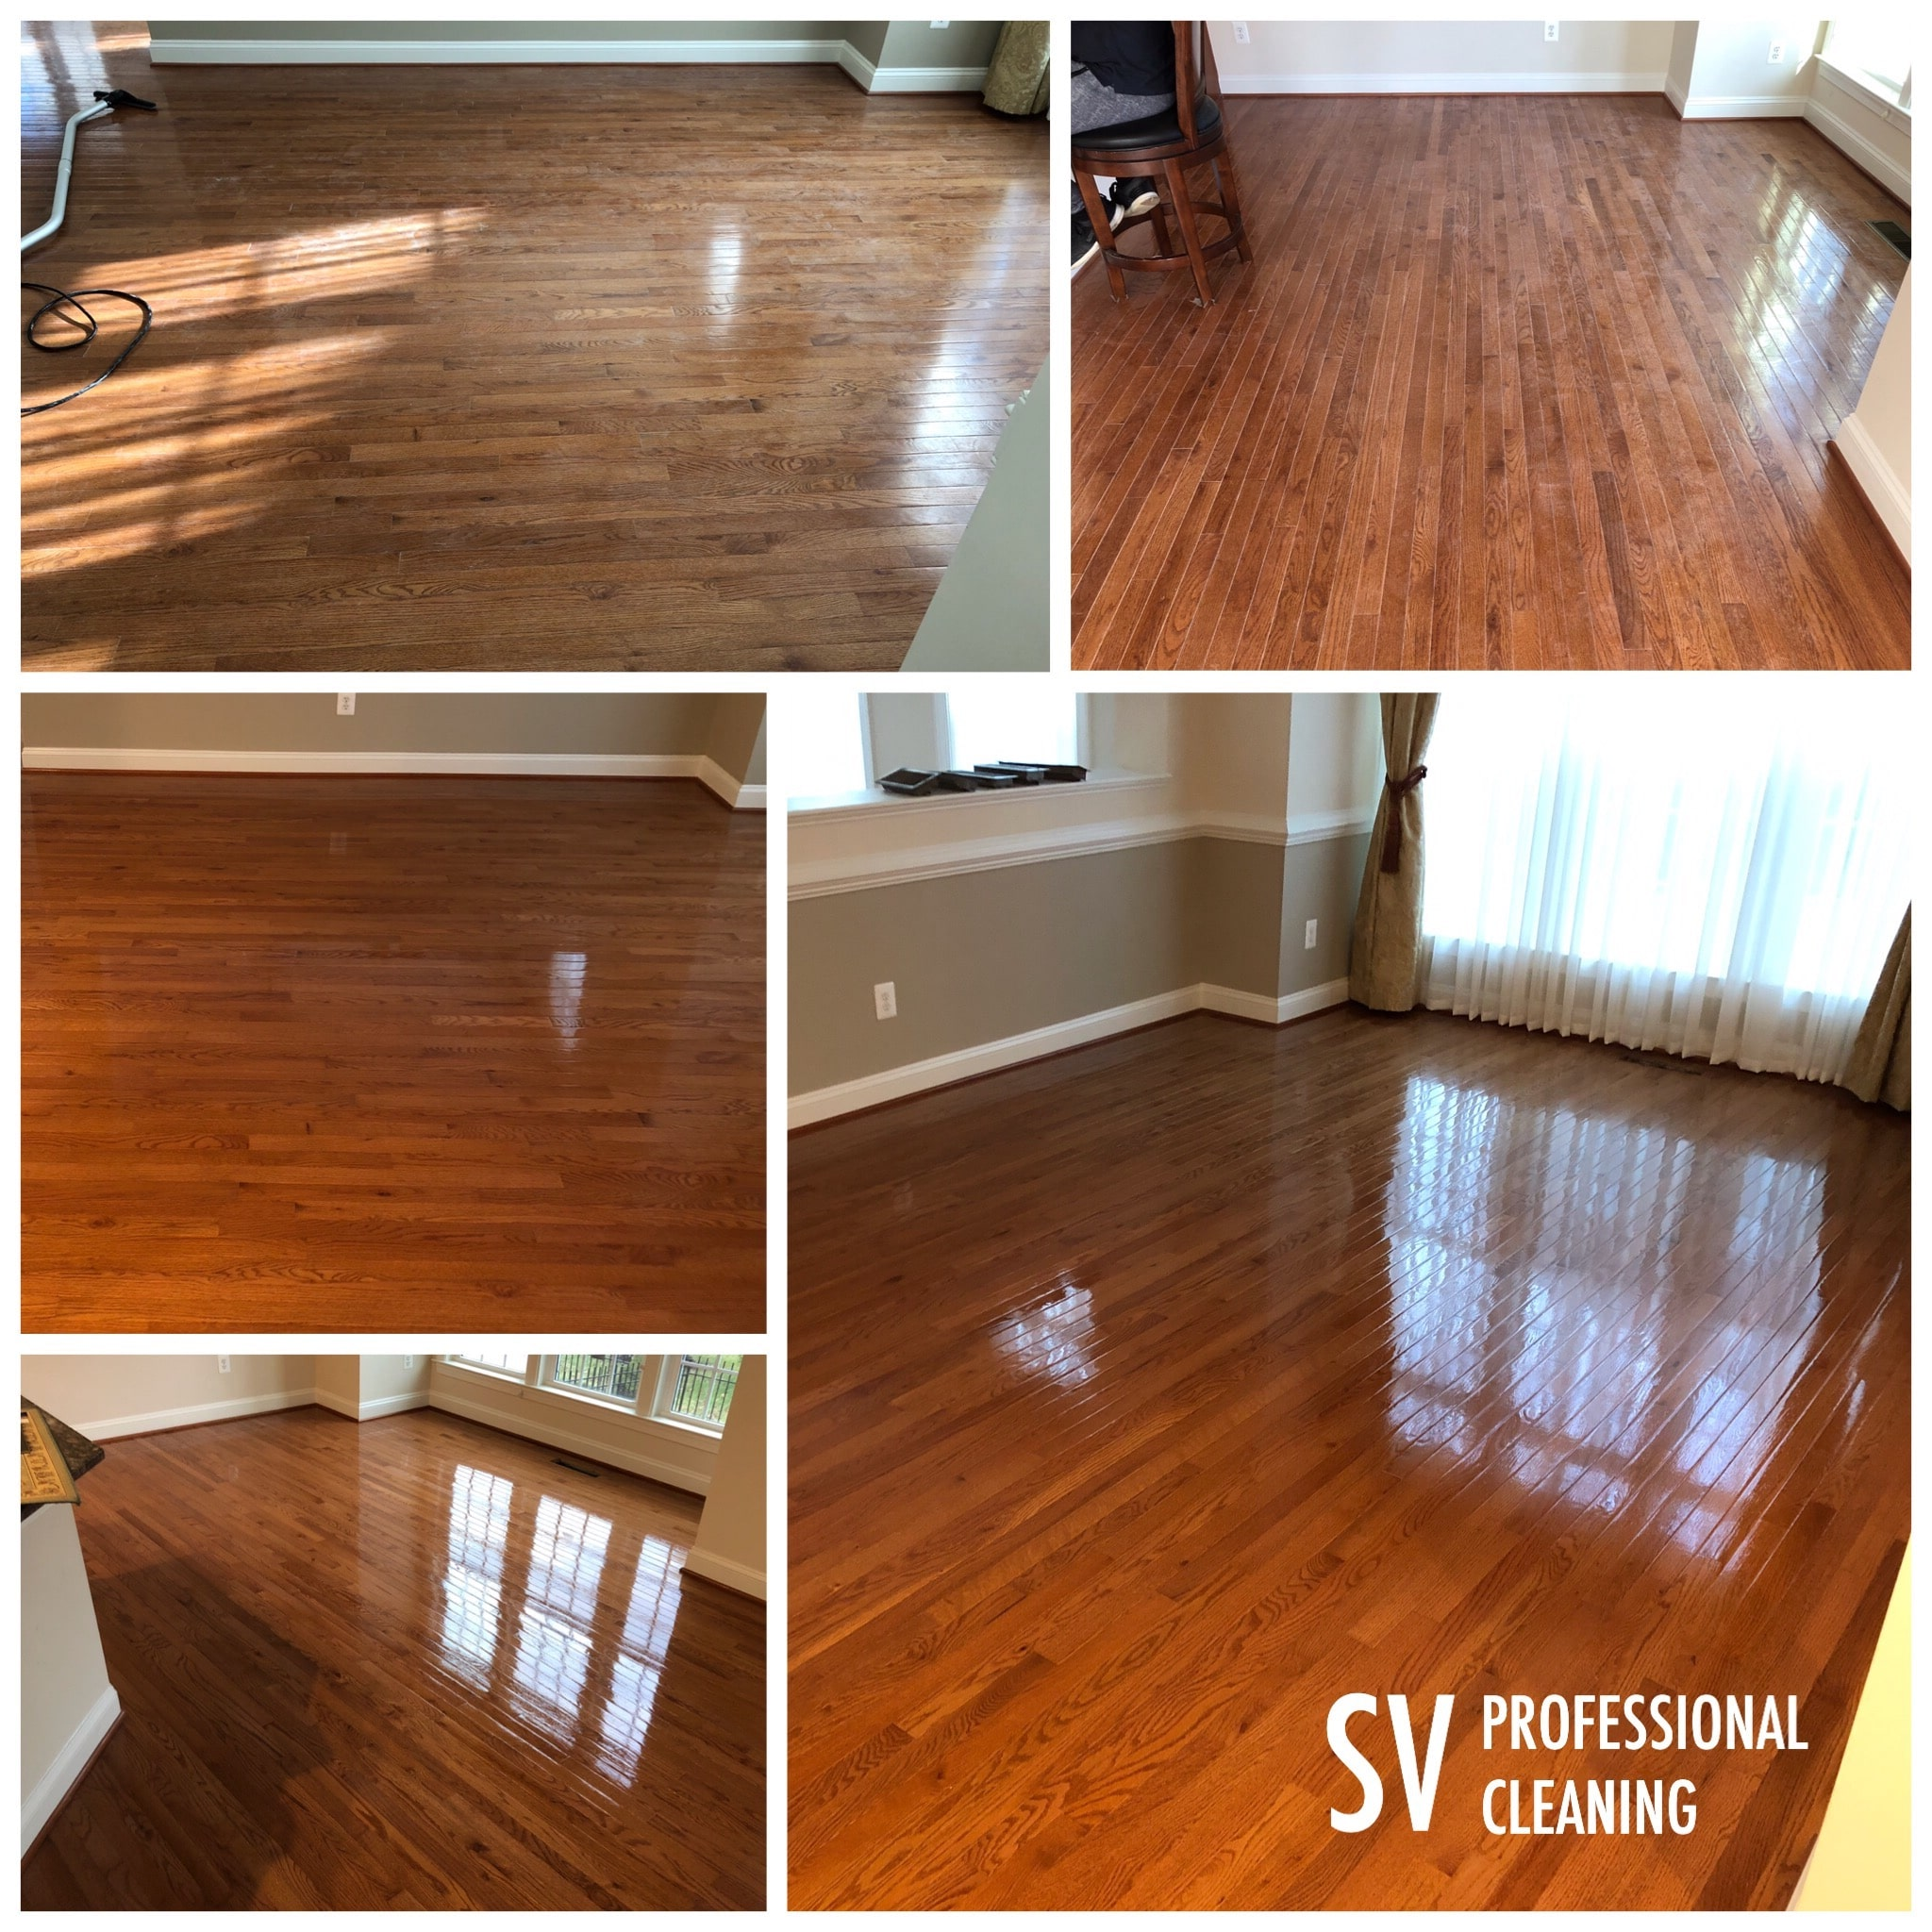 Best Hardwood Floor Cleaners Alexandria Va Hardwood Floor